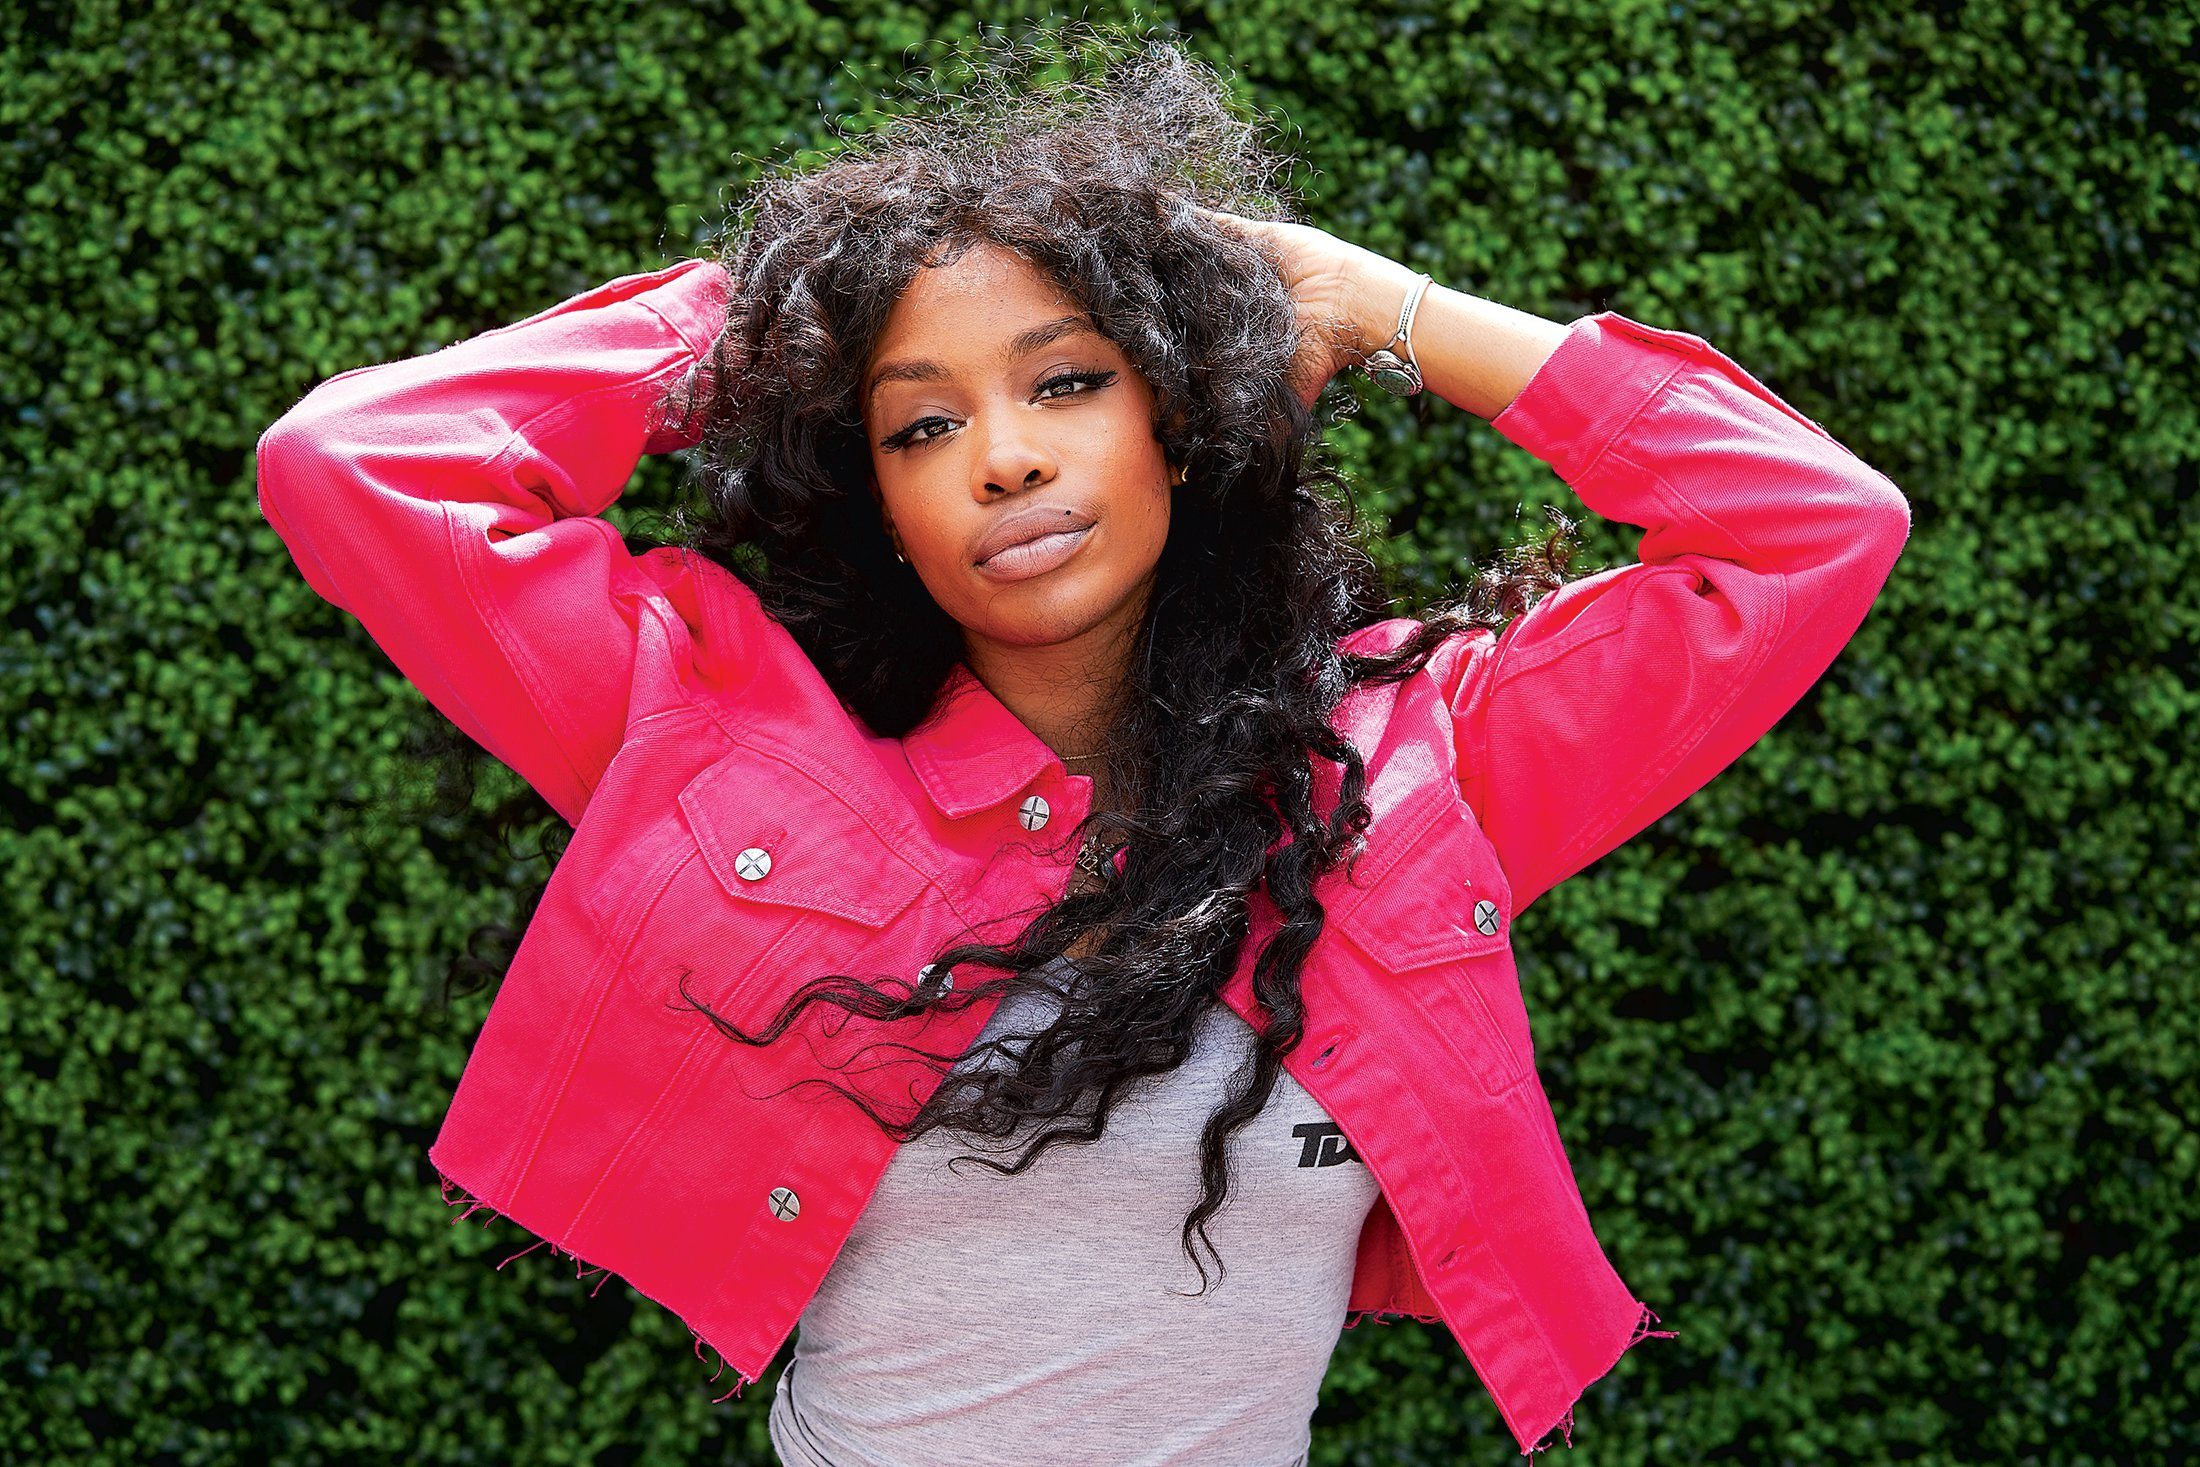 Photograph of SZA by Nic Bezzina/New York Times/ Redux.